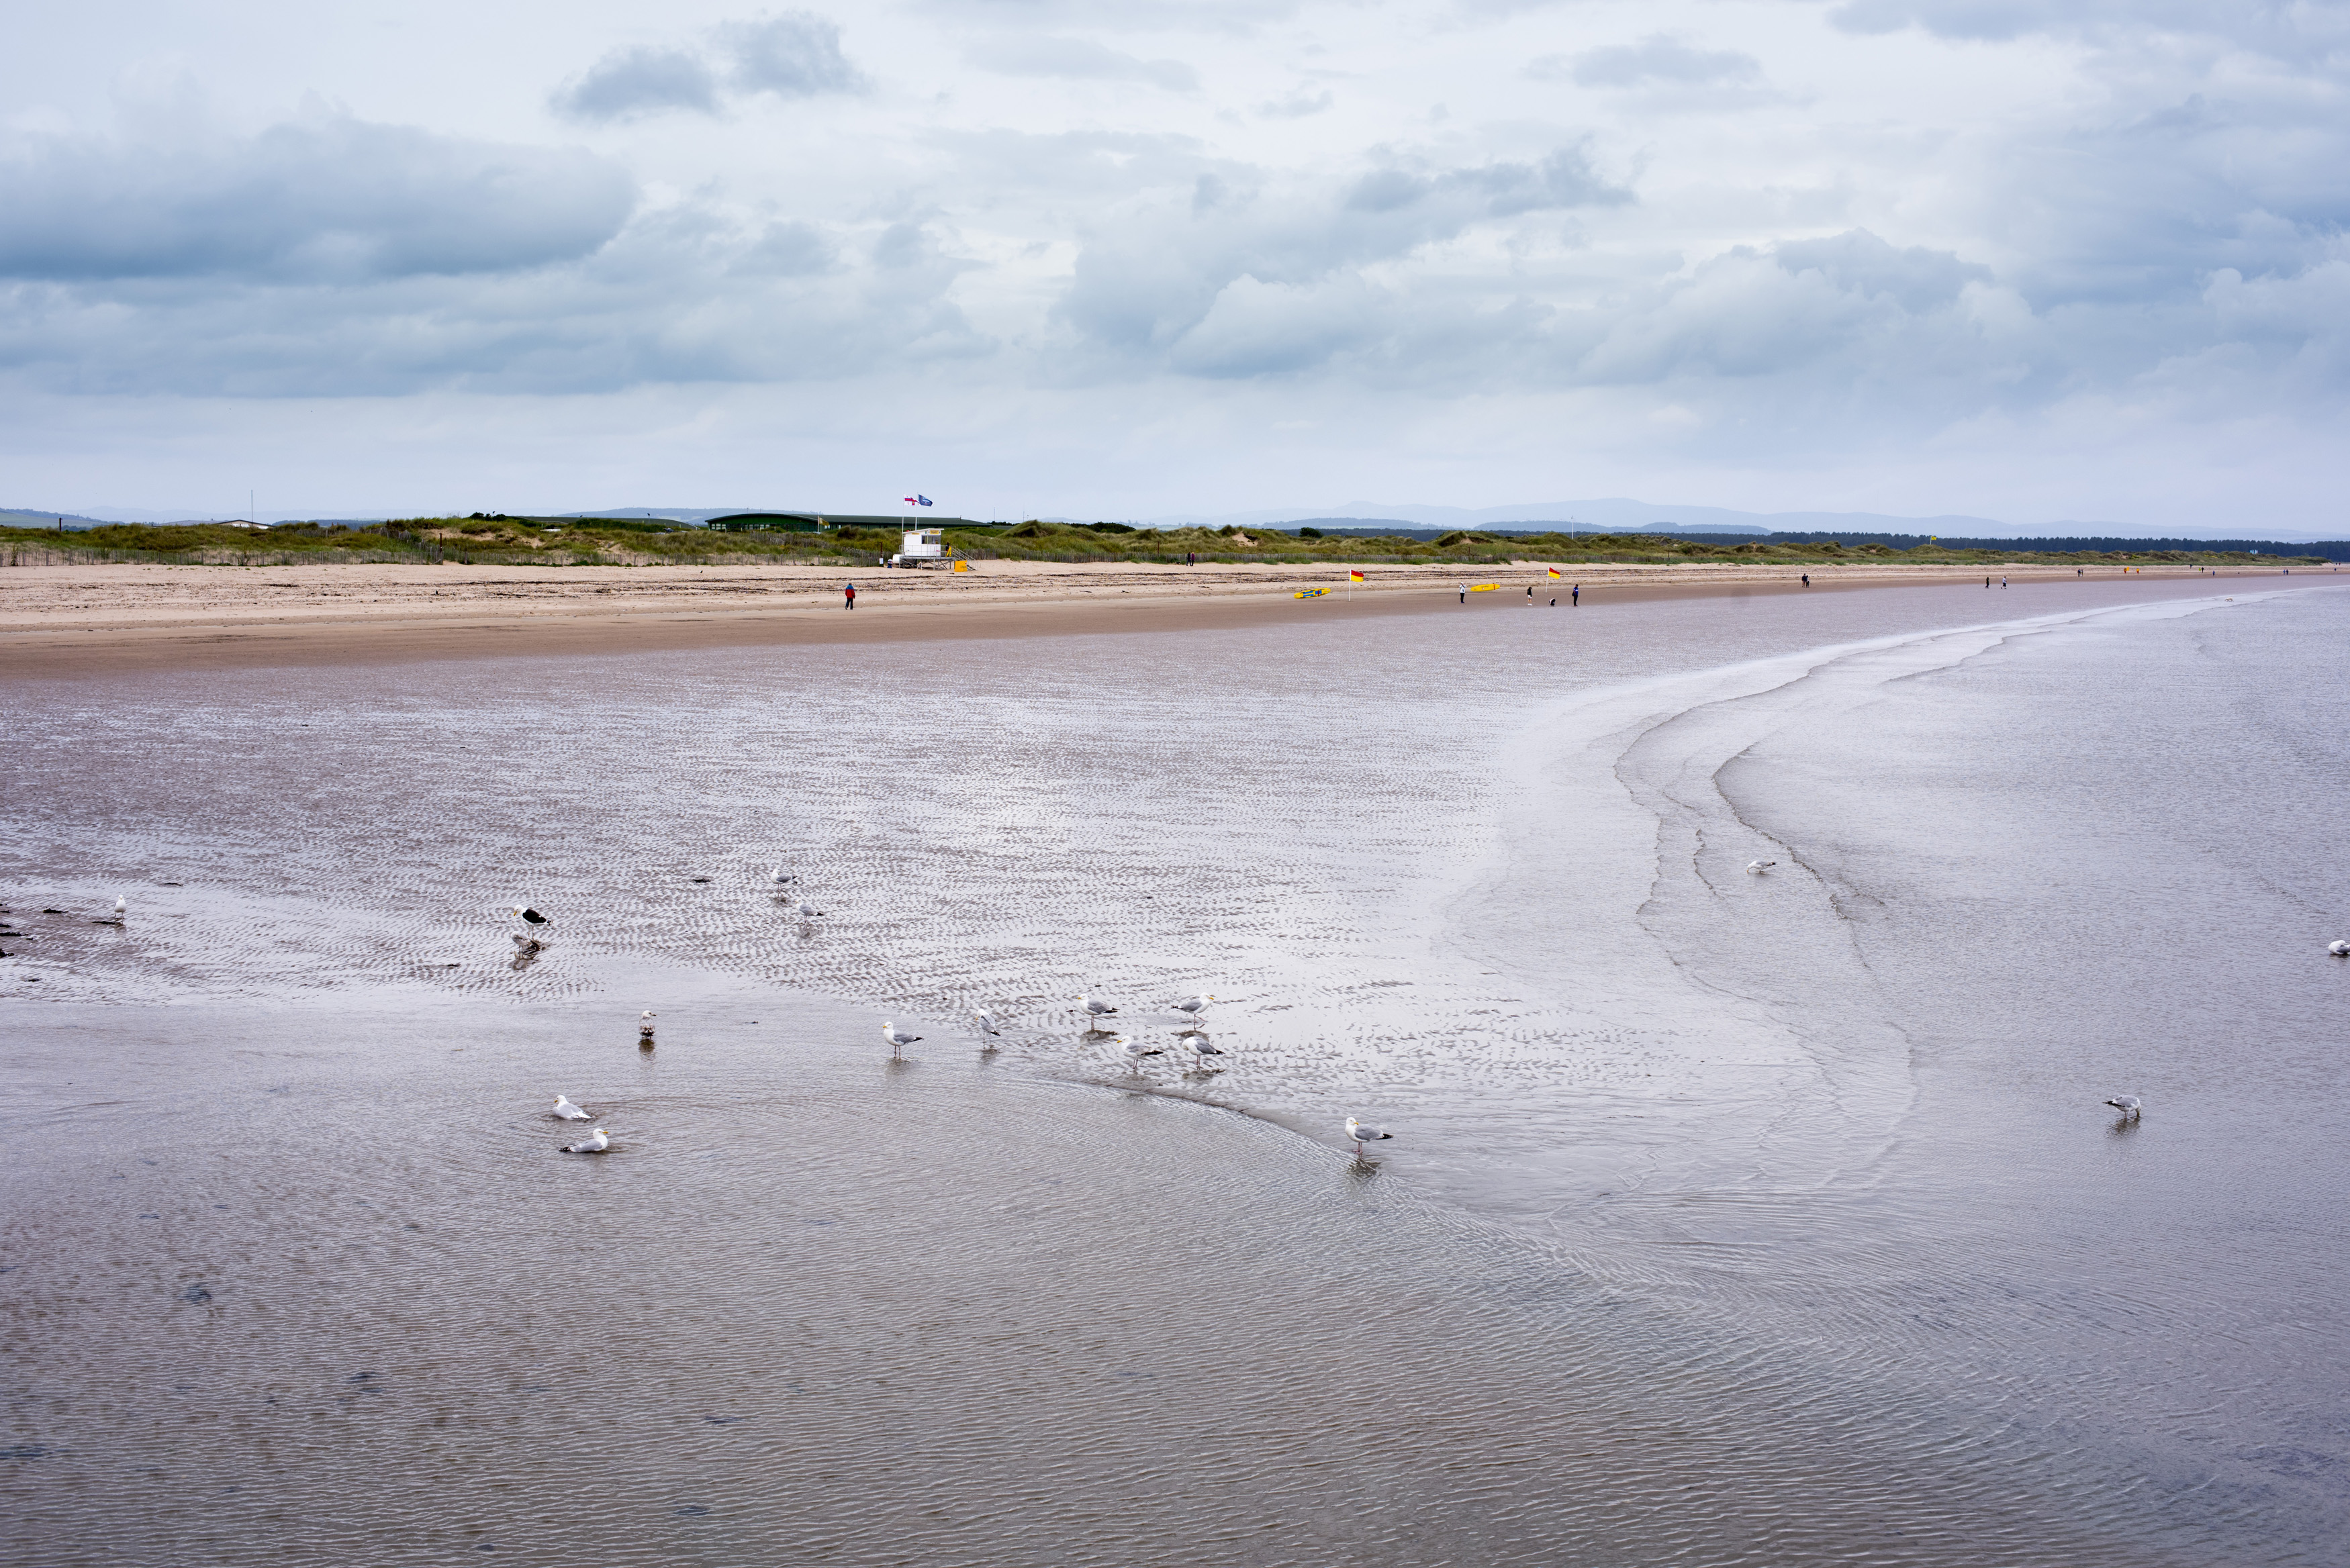 Seagulls standing in the shallow water of a low tide on the beach at St Andrews, Scotland under a grey cloudy sky in a scenic landscape